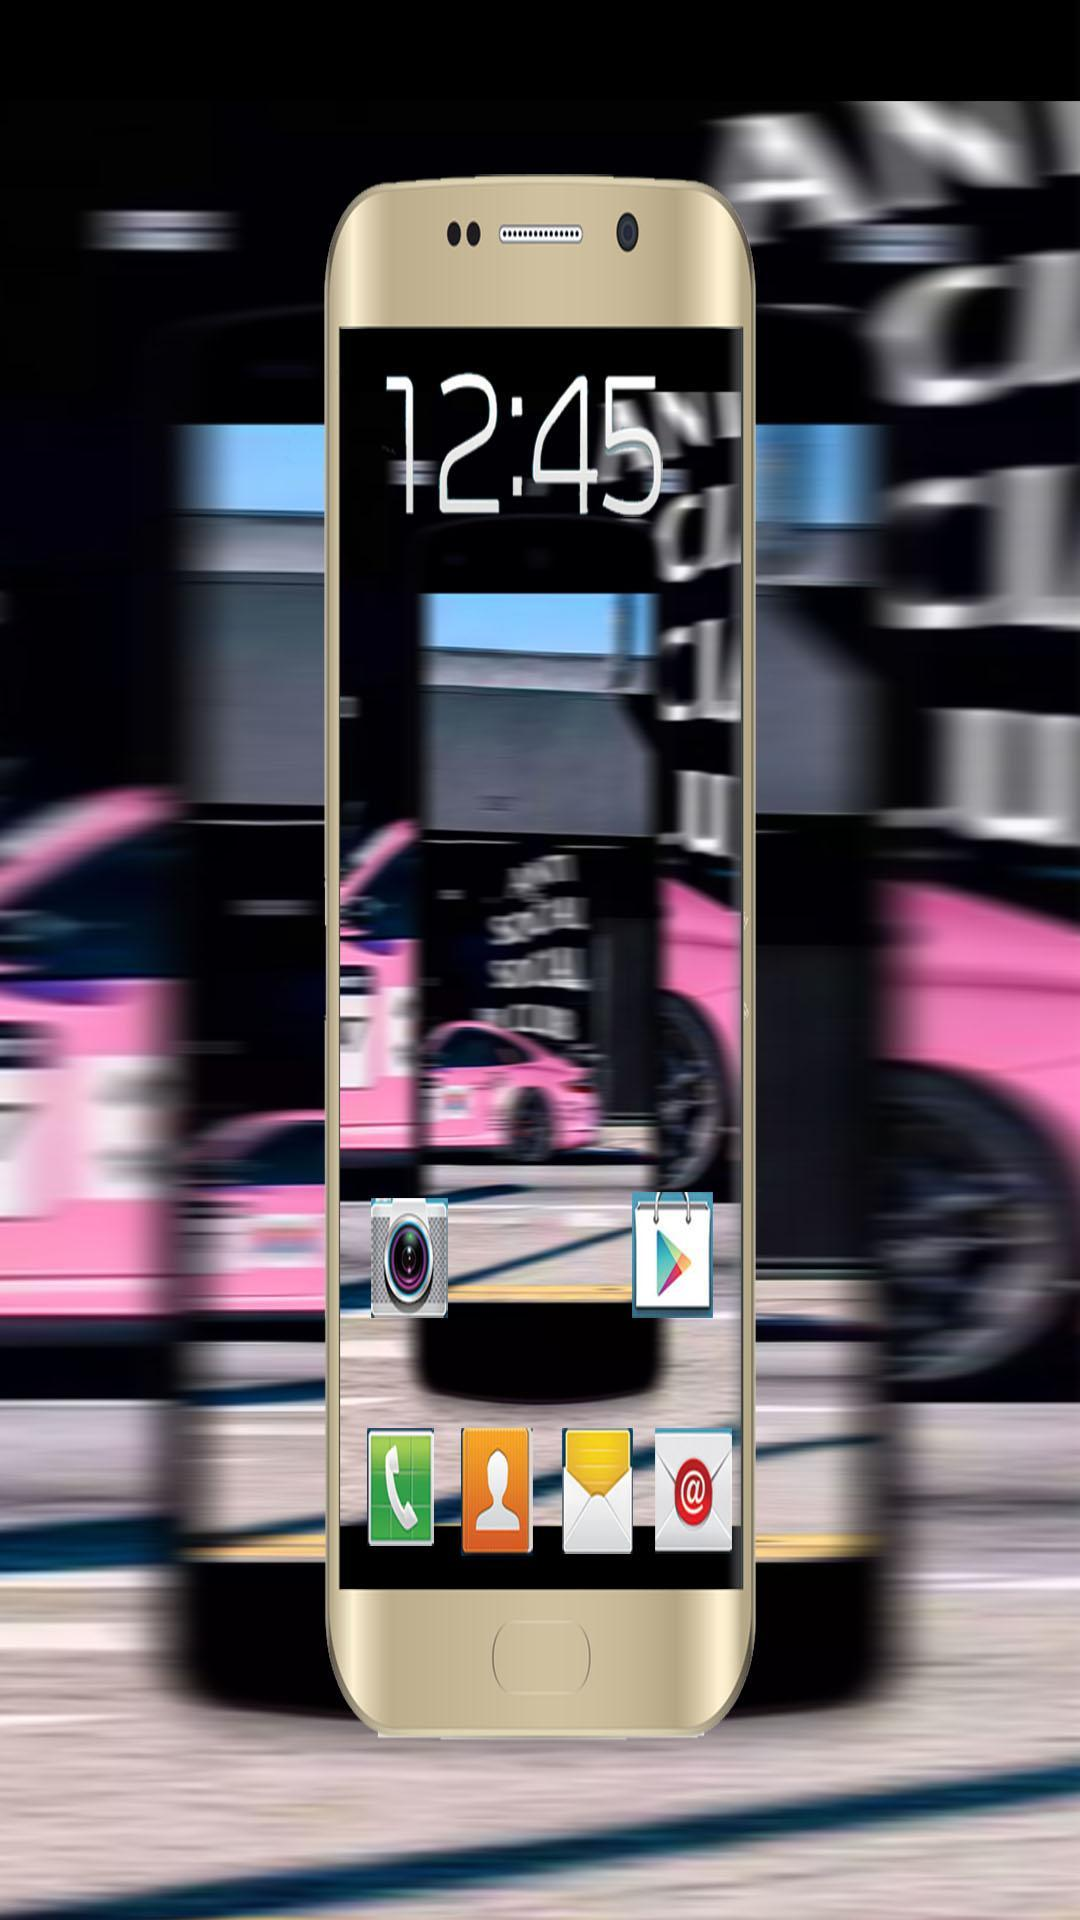 Hypebeast Wallpaper HD for Android   APK Download 1080x1920